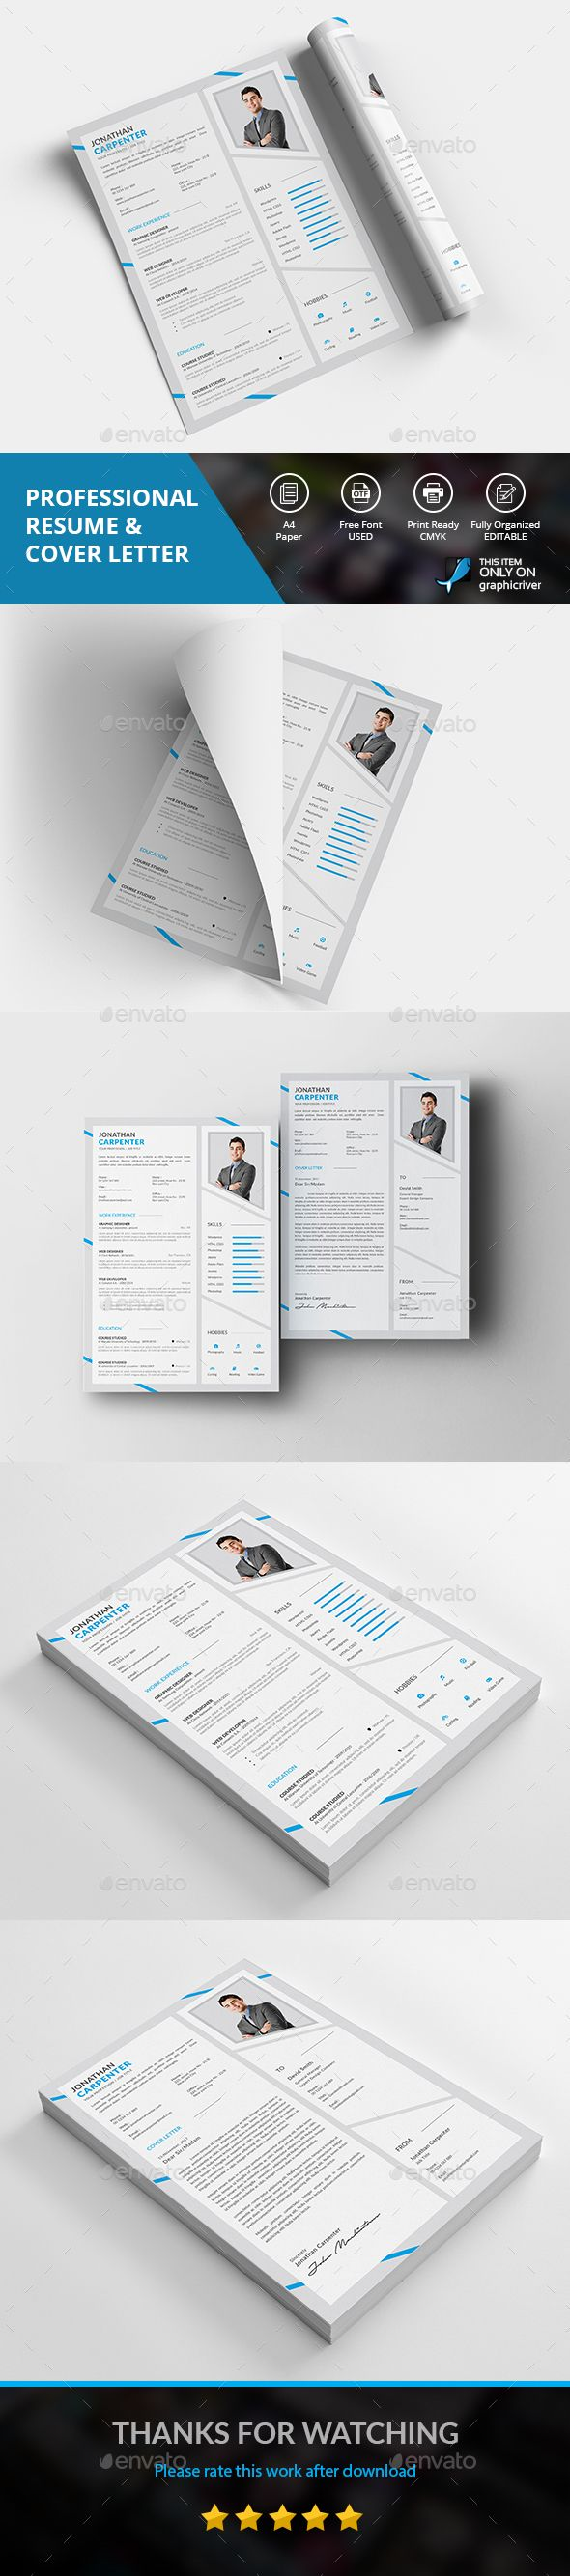 #Professional #Resume - Resumes #Stationery Download here: https://graphicriver.net/item/professional-resume/19504913?ref=alena994